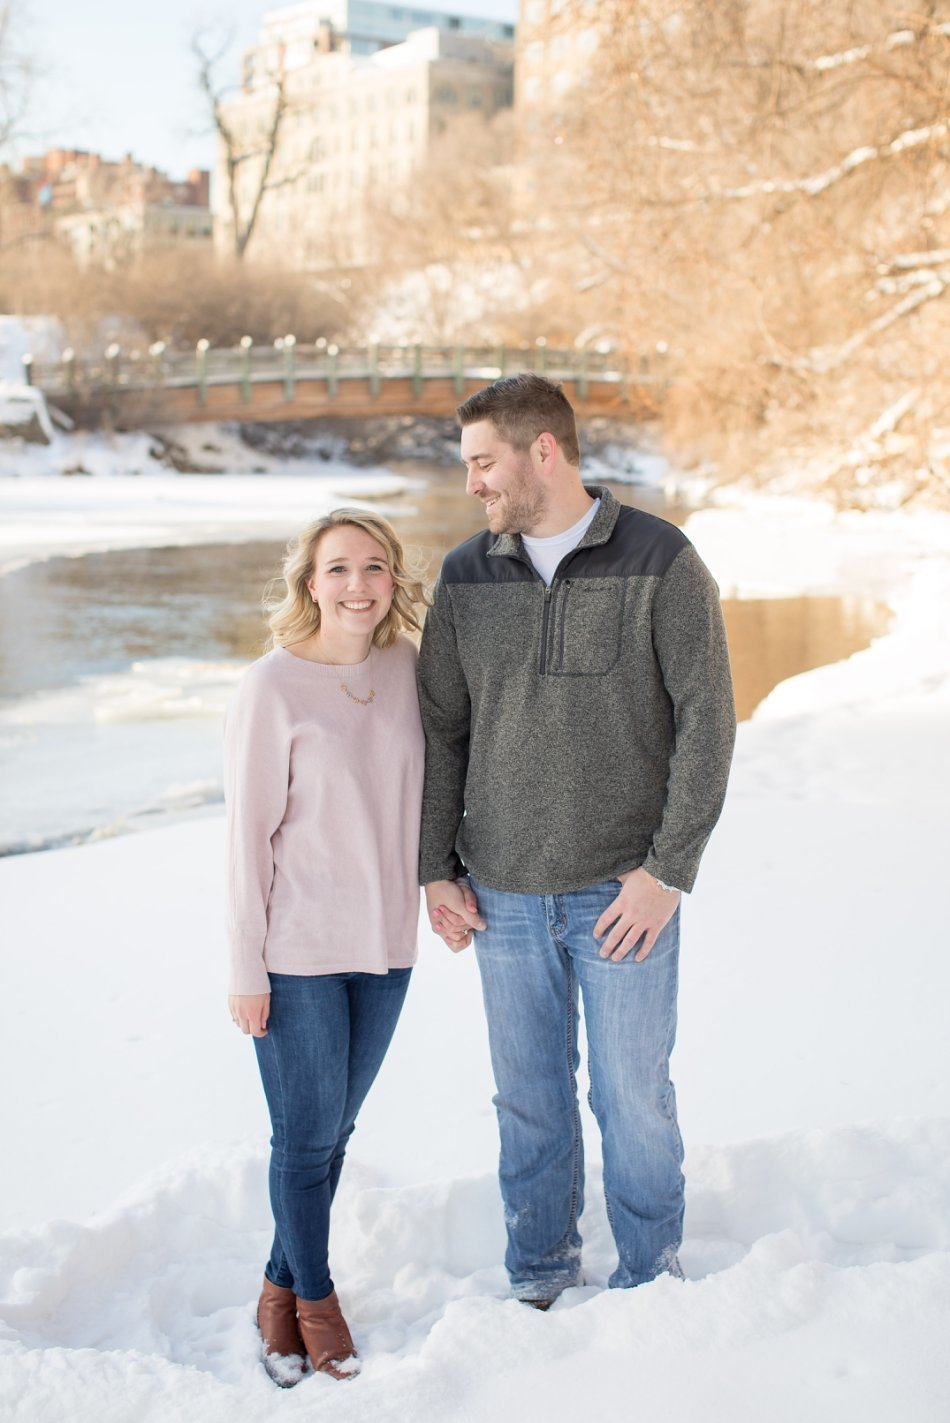 Minnesota Engagement Photography - Claire & Ethan (20)